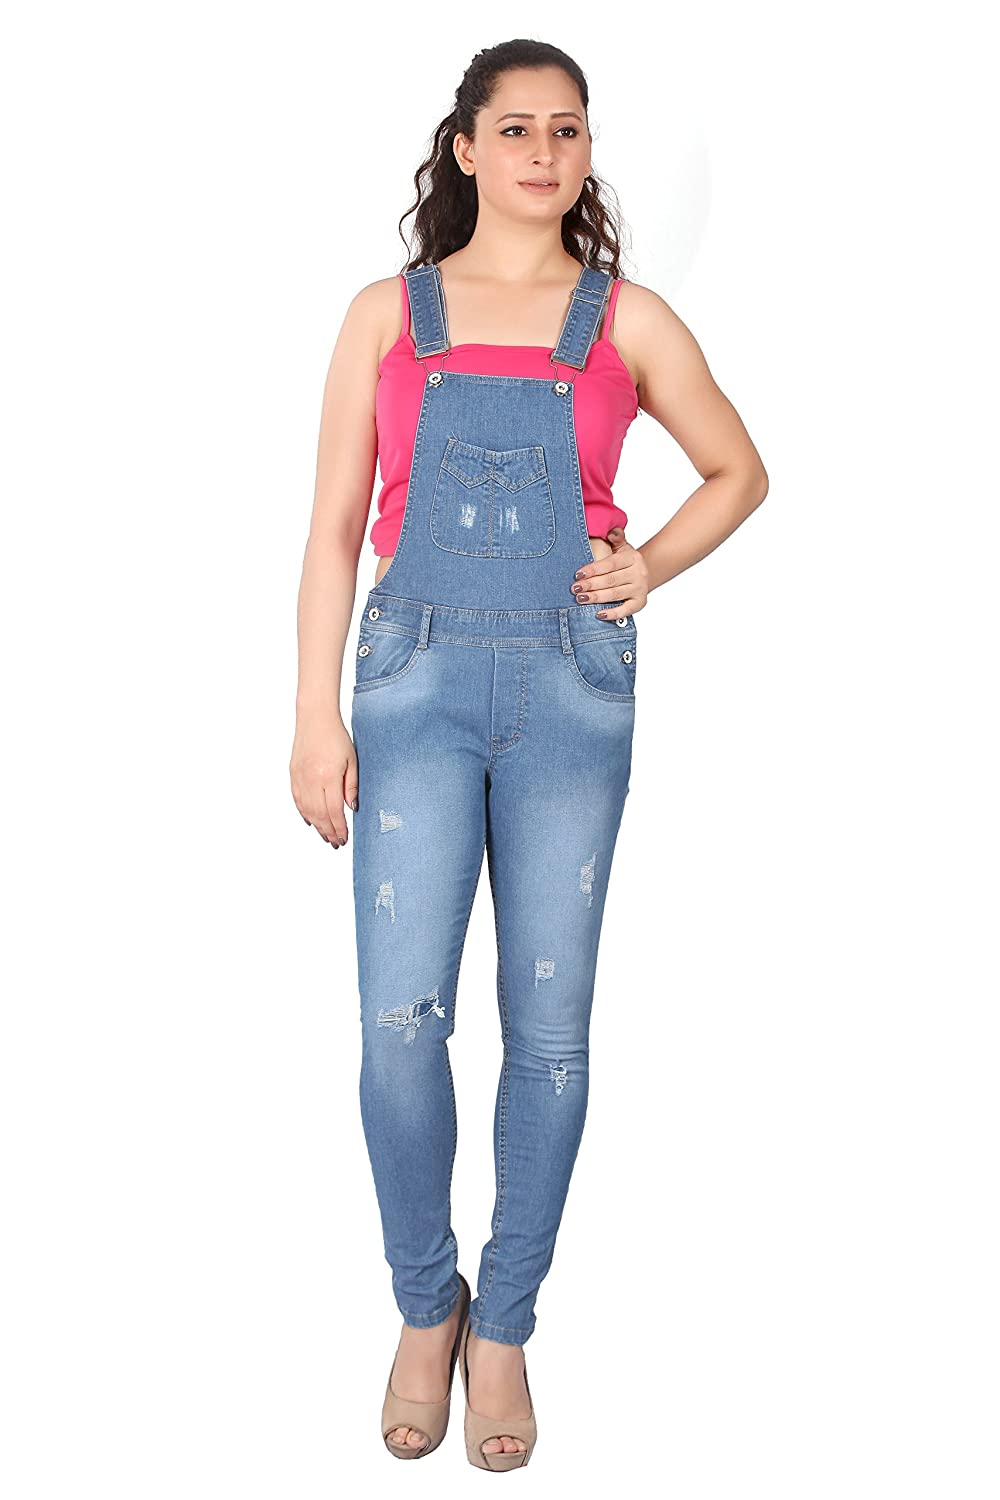 586f20ab4614 FCK-3 Women s Mild Distressed Stretchable Denim Dungaree  Amazon.in   Clothing   Accessories